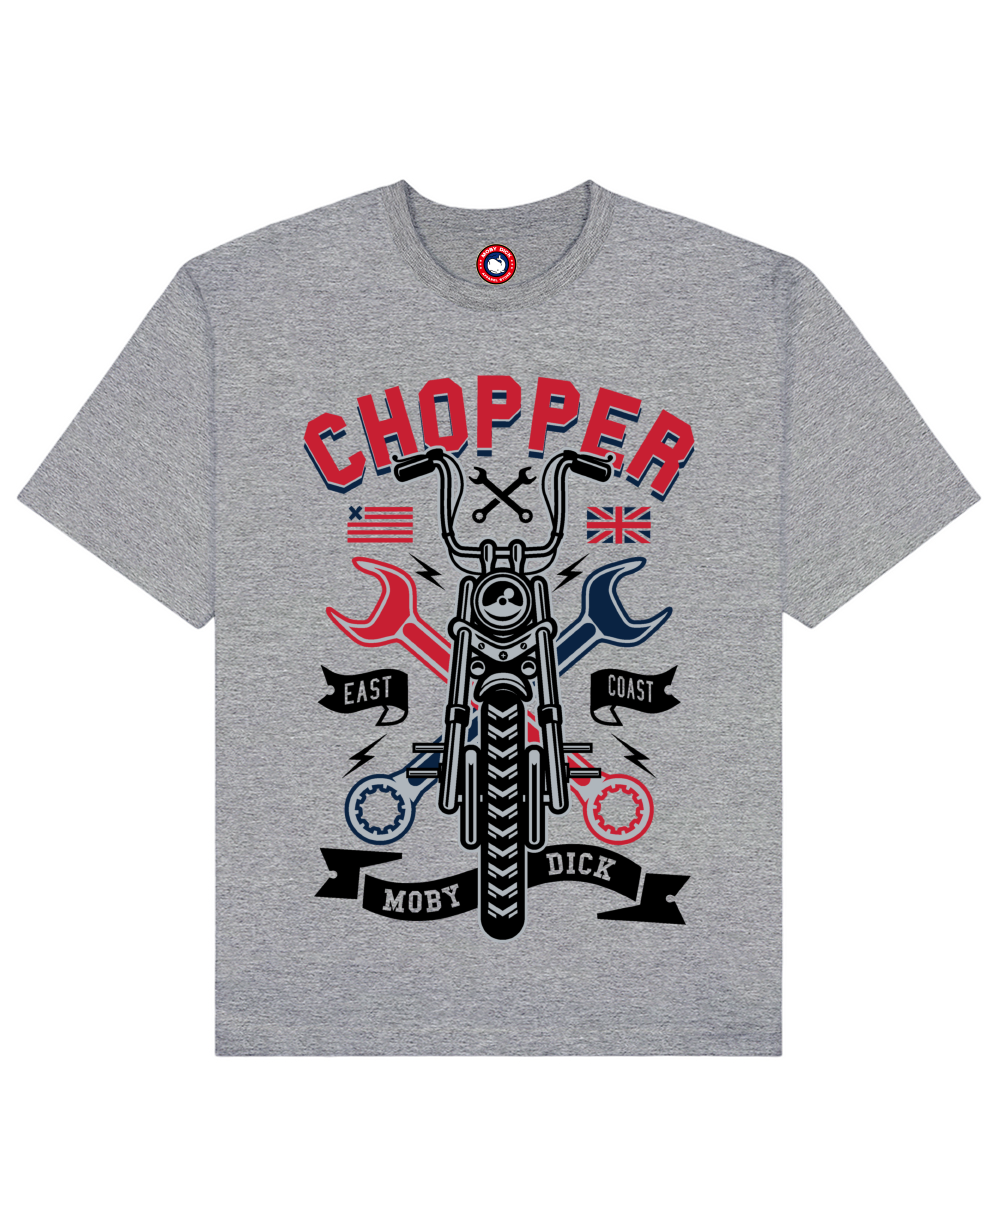 Chopper Print T-Shirt in Gray - T-Shirts - MOBY DICK - BRANMA